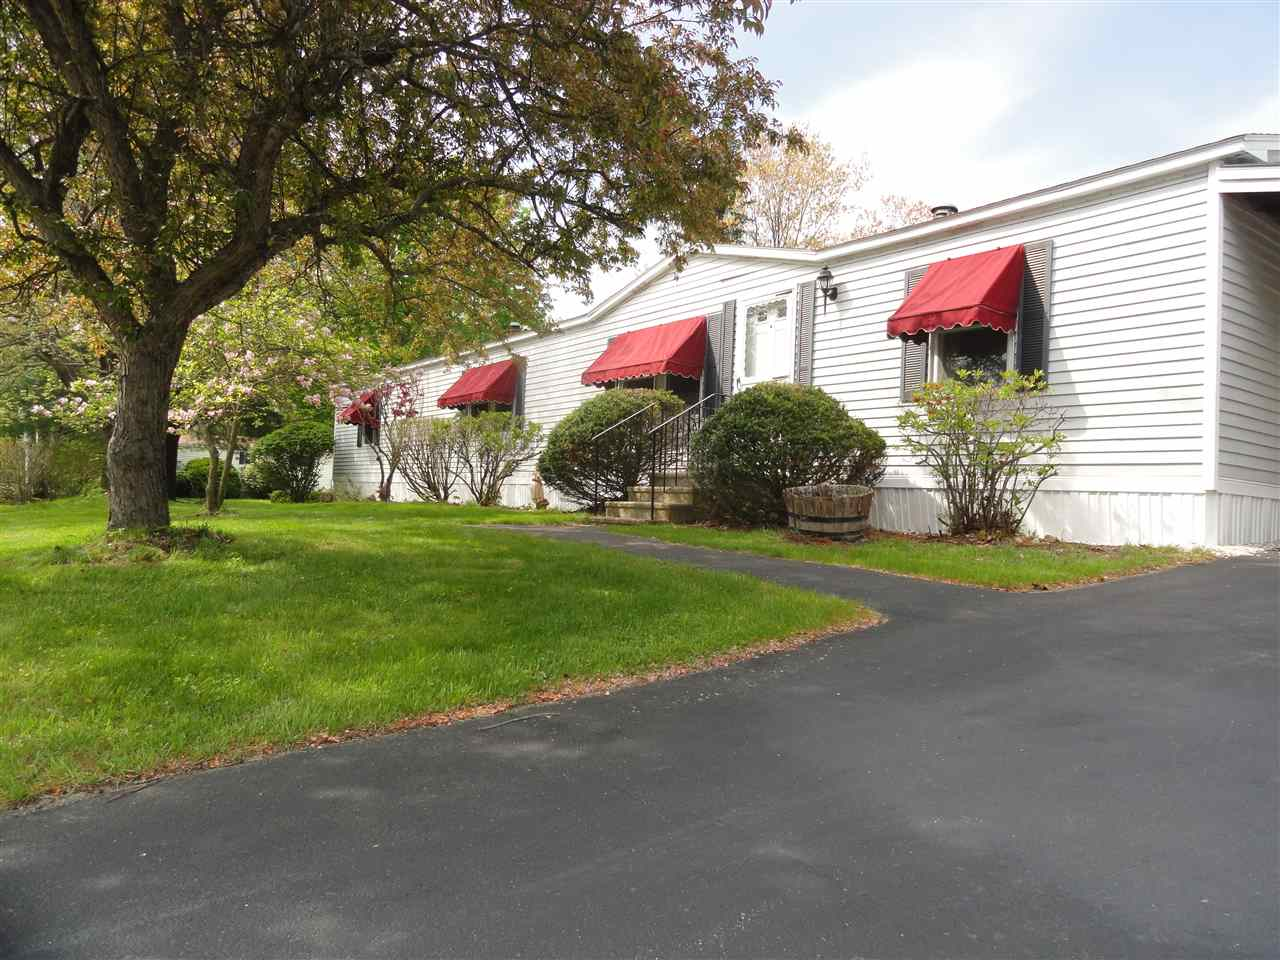 MLS 4753967: 26 Melendy Road-Unit 22, Milford NH